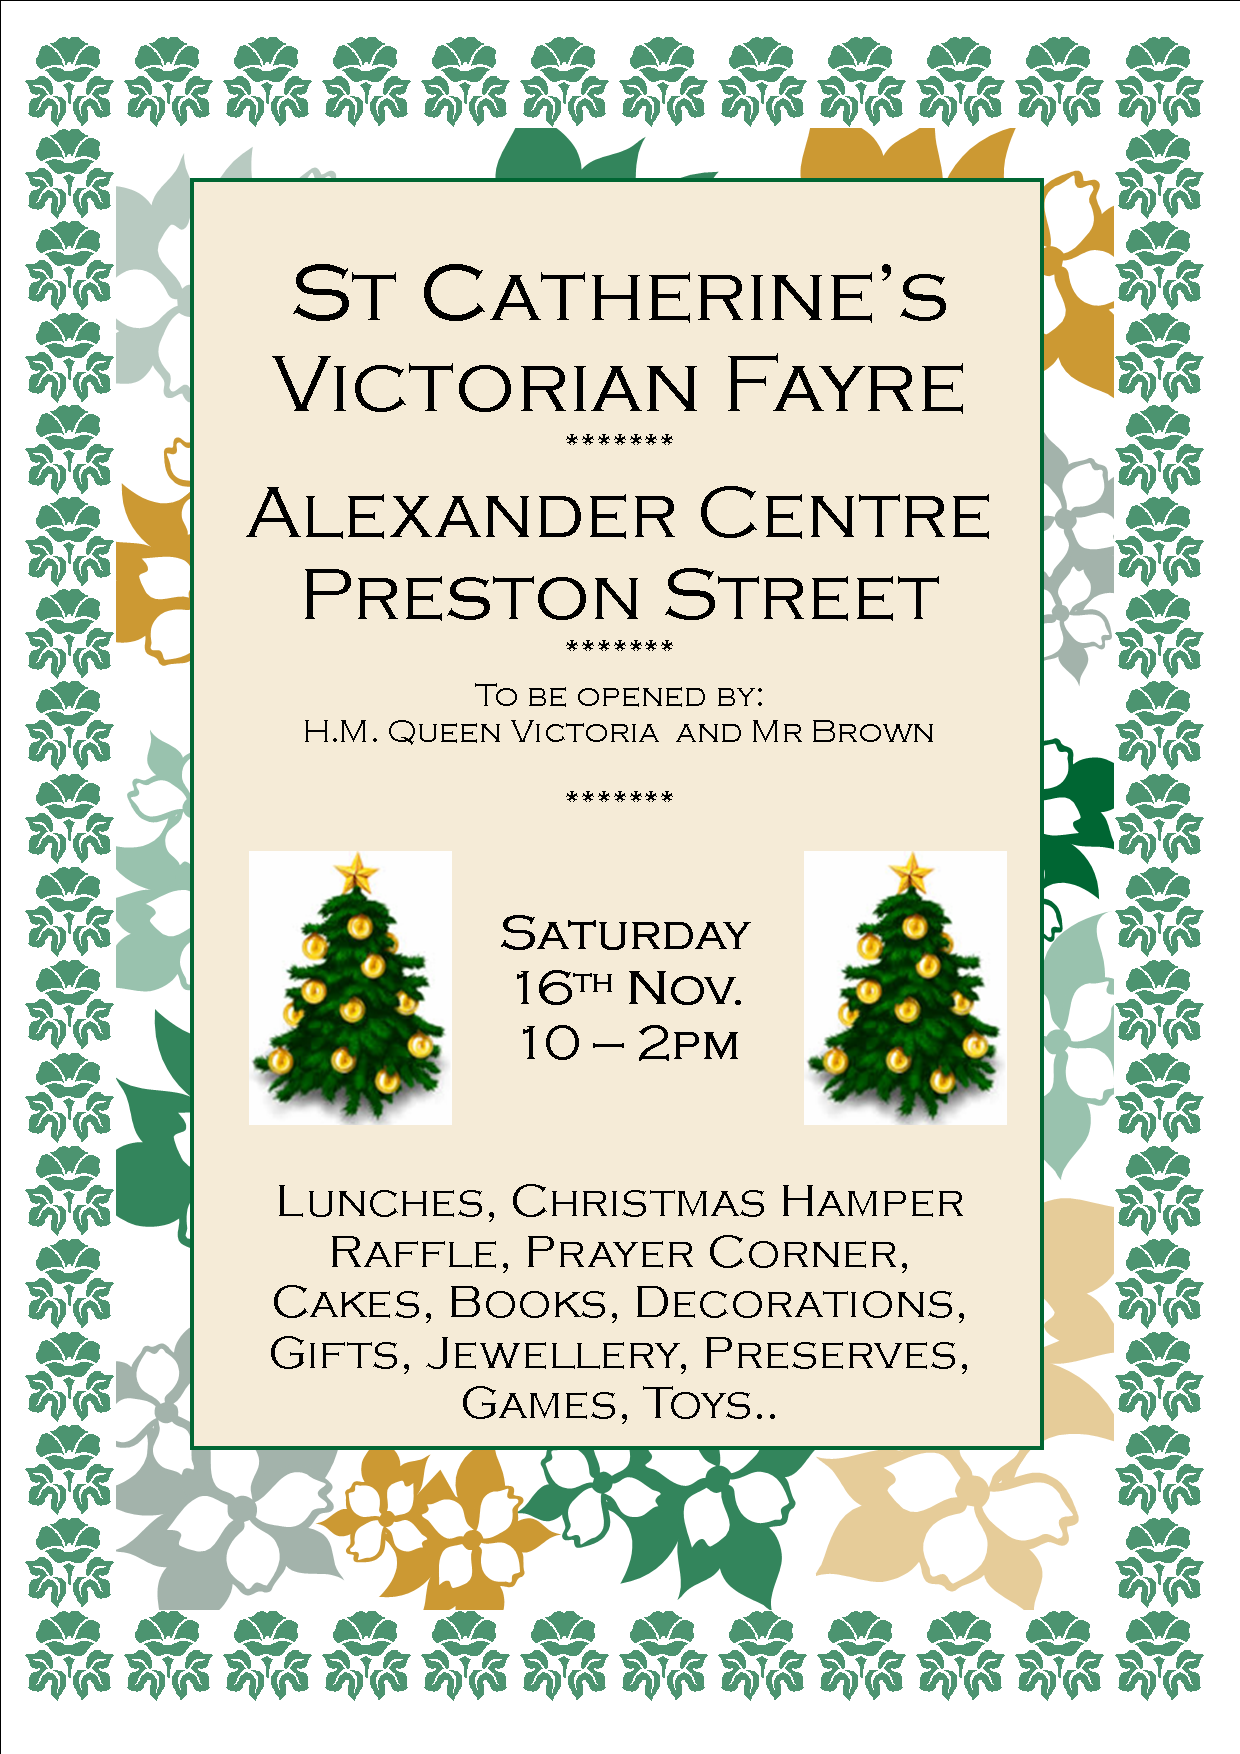 St Catherine's Victorian Fayre